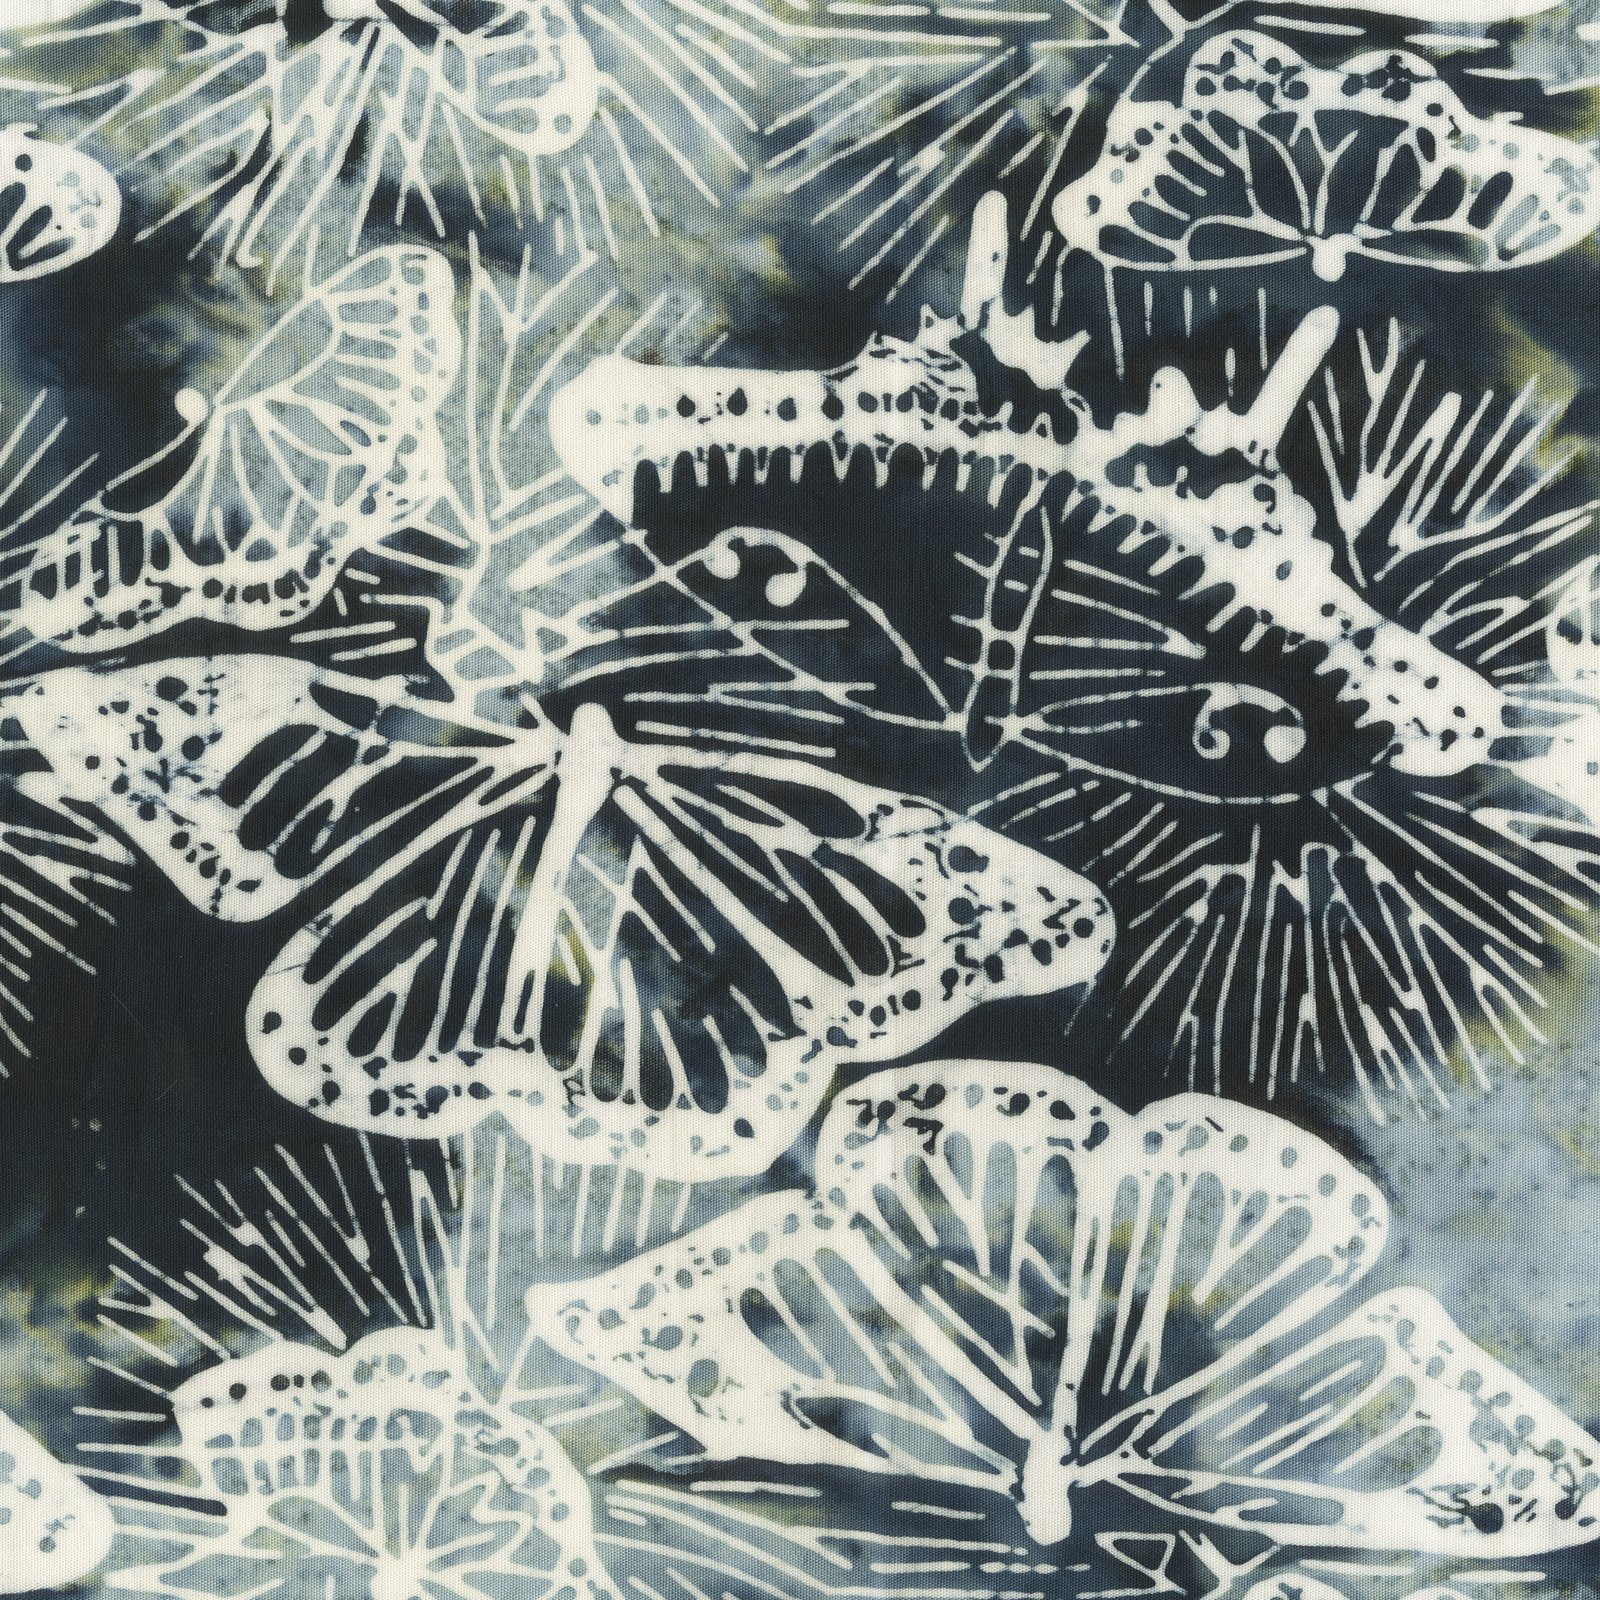 701Q-2 Island Home by Natalie Barnes of Beyond the Reef for Anthology Fabrics